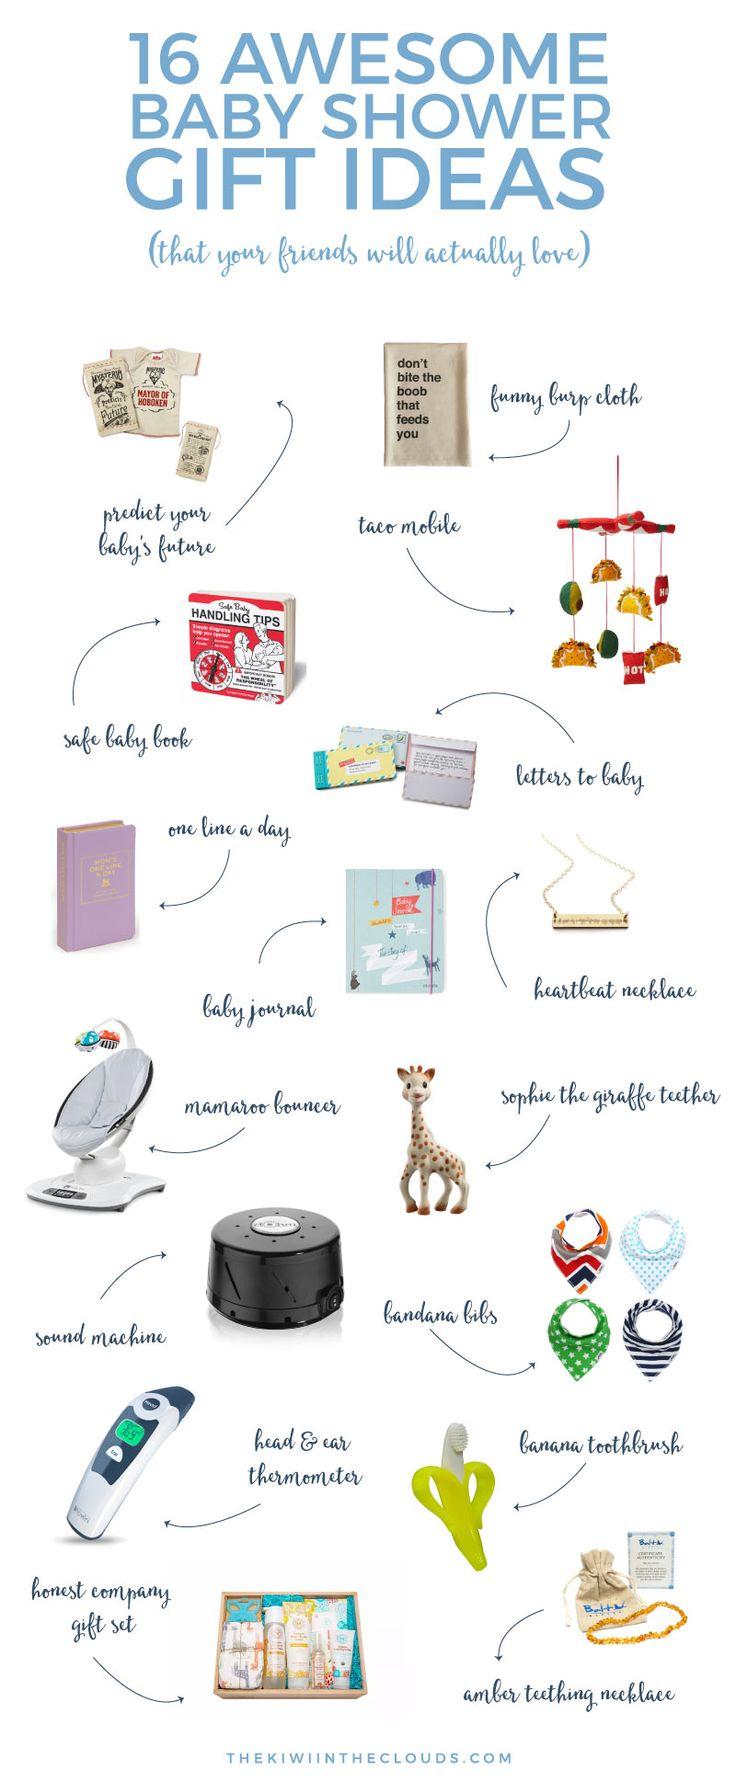 Give your friends the best baby shower gifts with these quirky, sentimental, and…